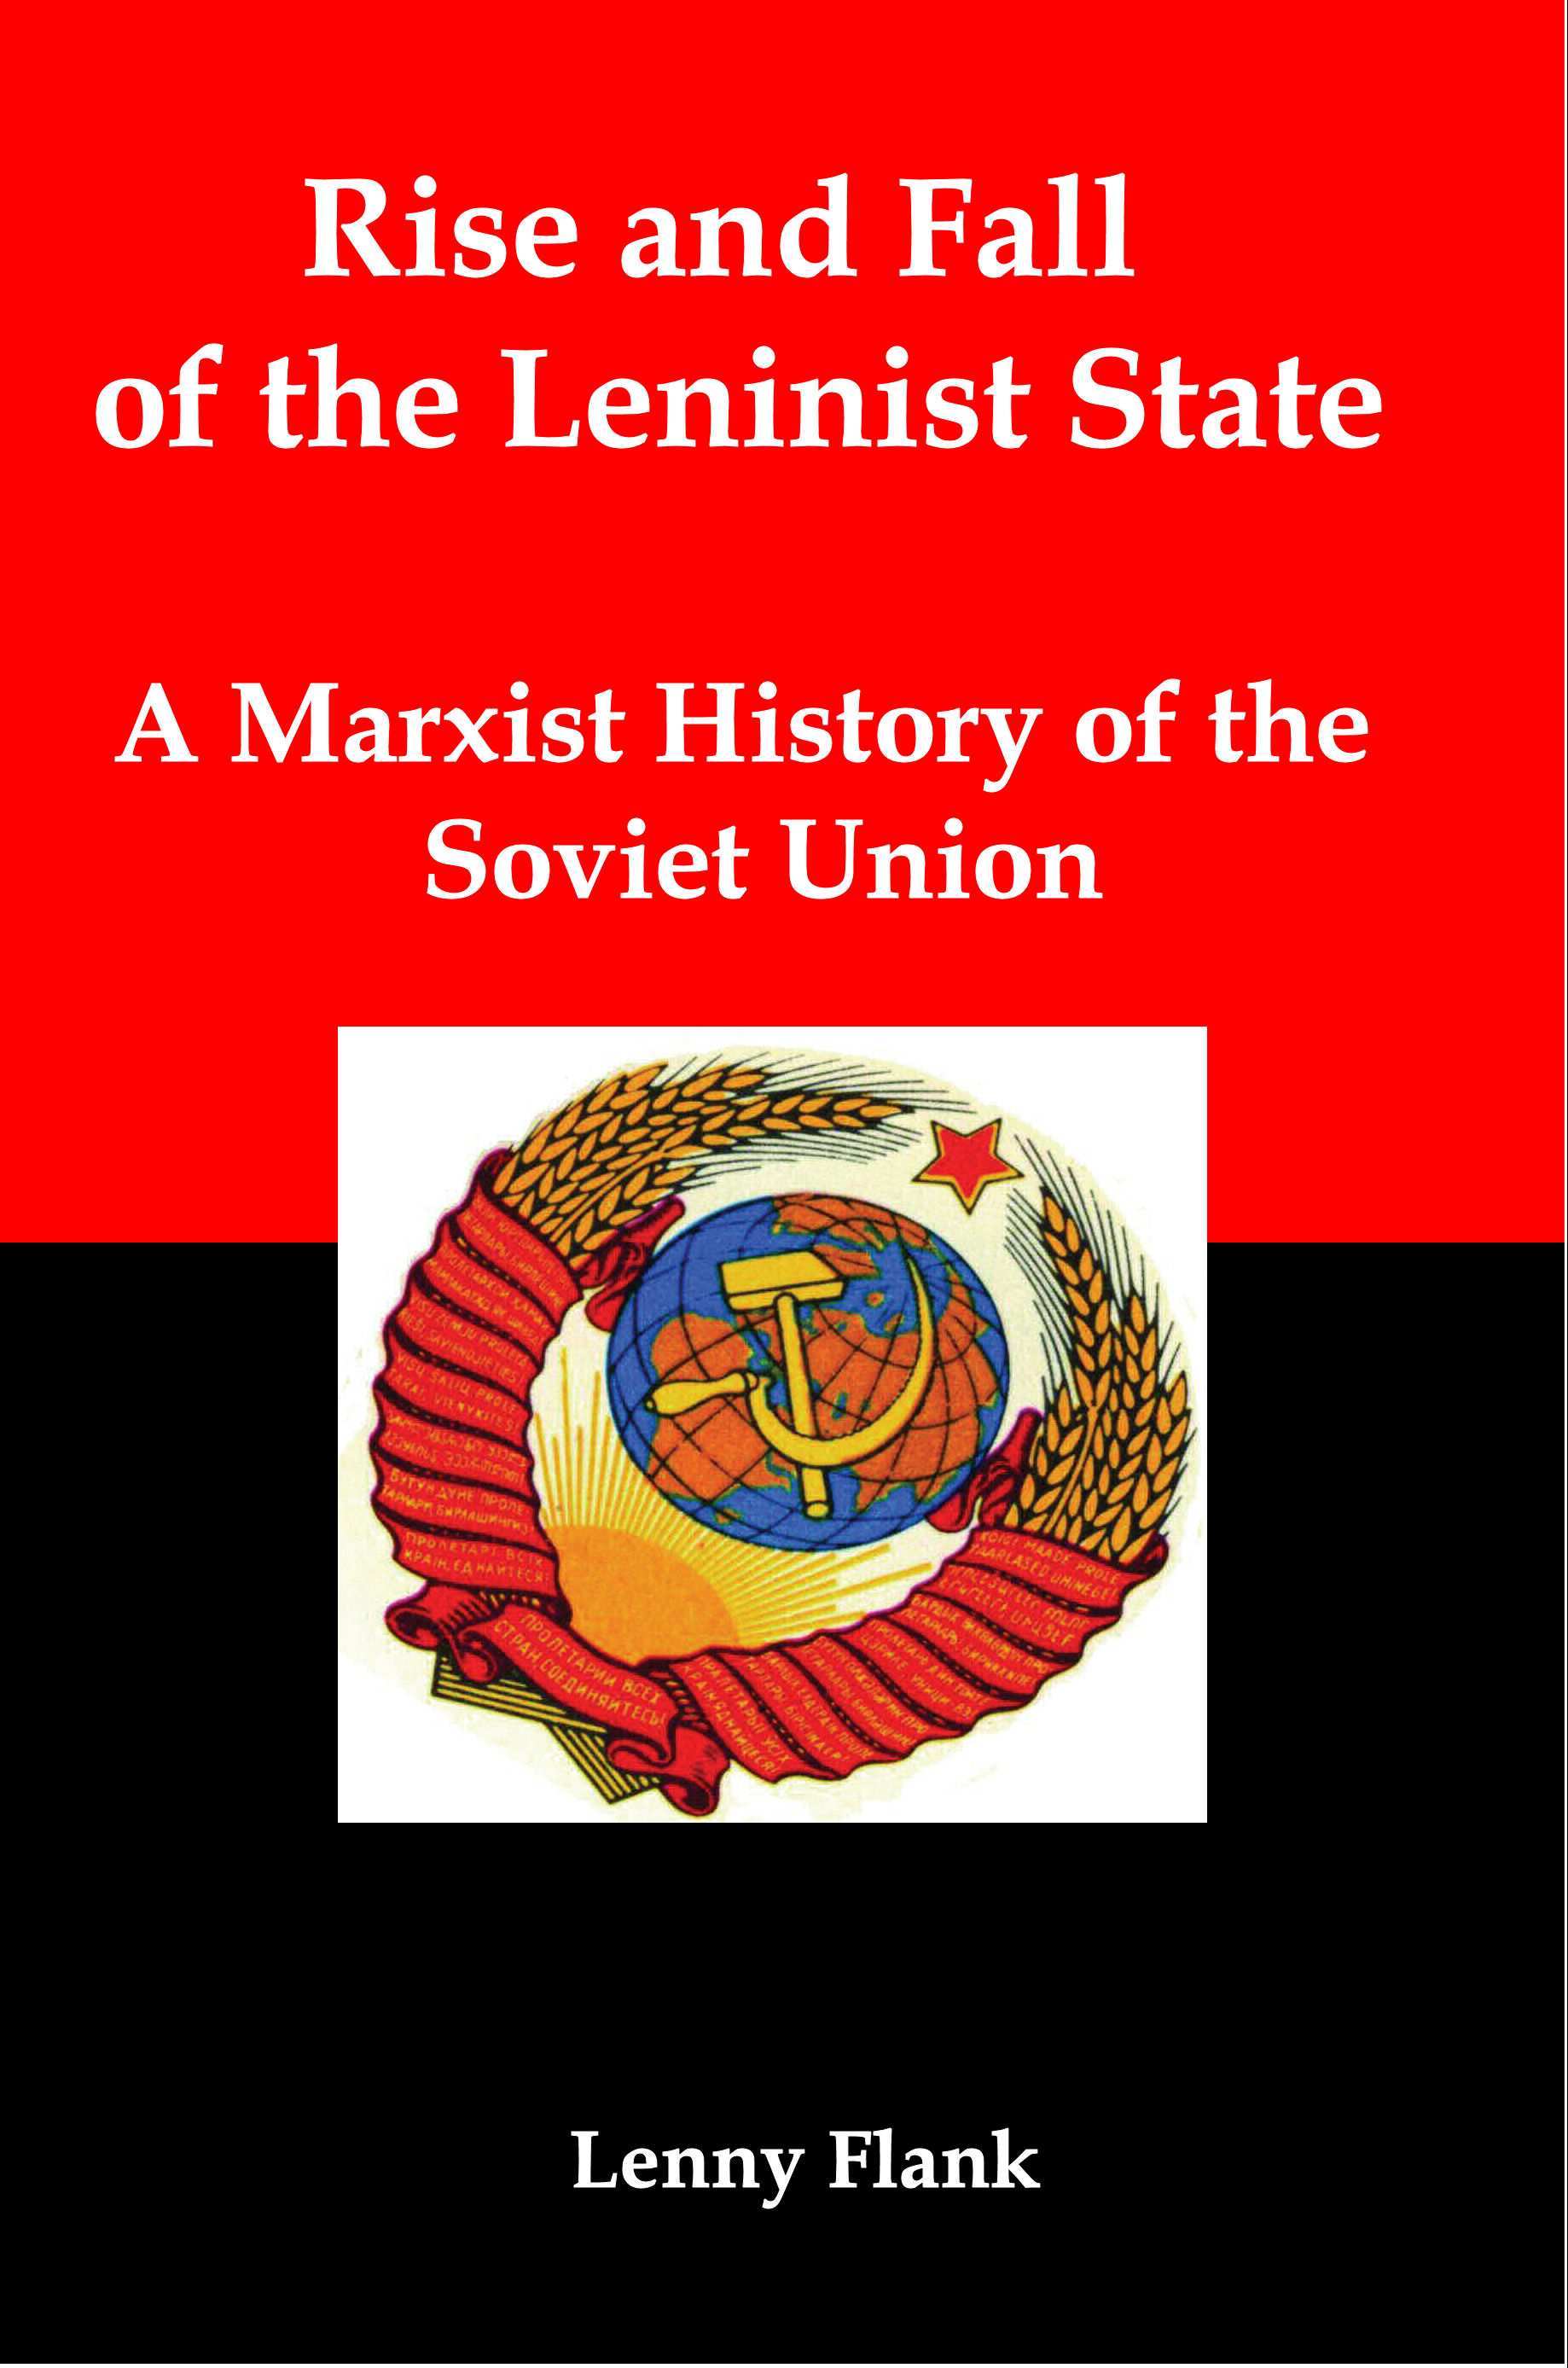 a history of rise of communism in russia Communism was the bloodiest ideology that caused more than 120 million innocent deaths in the 20th century it was a nightmare which promised equality and justice, but which brought only bloodshed.